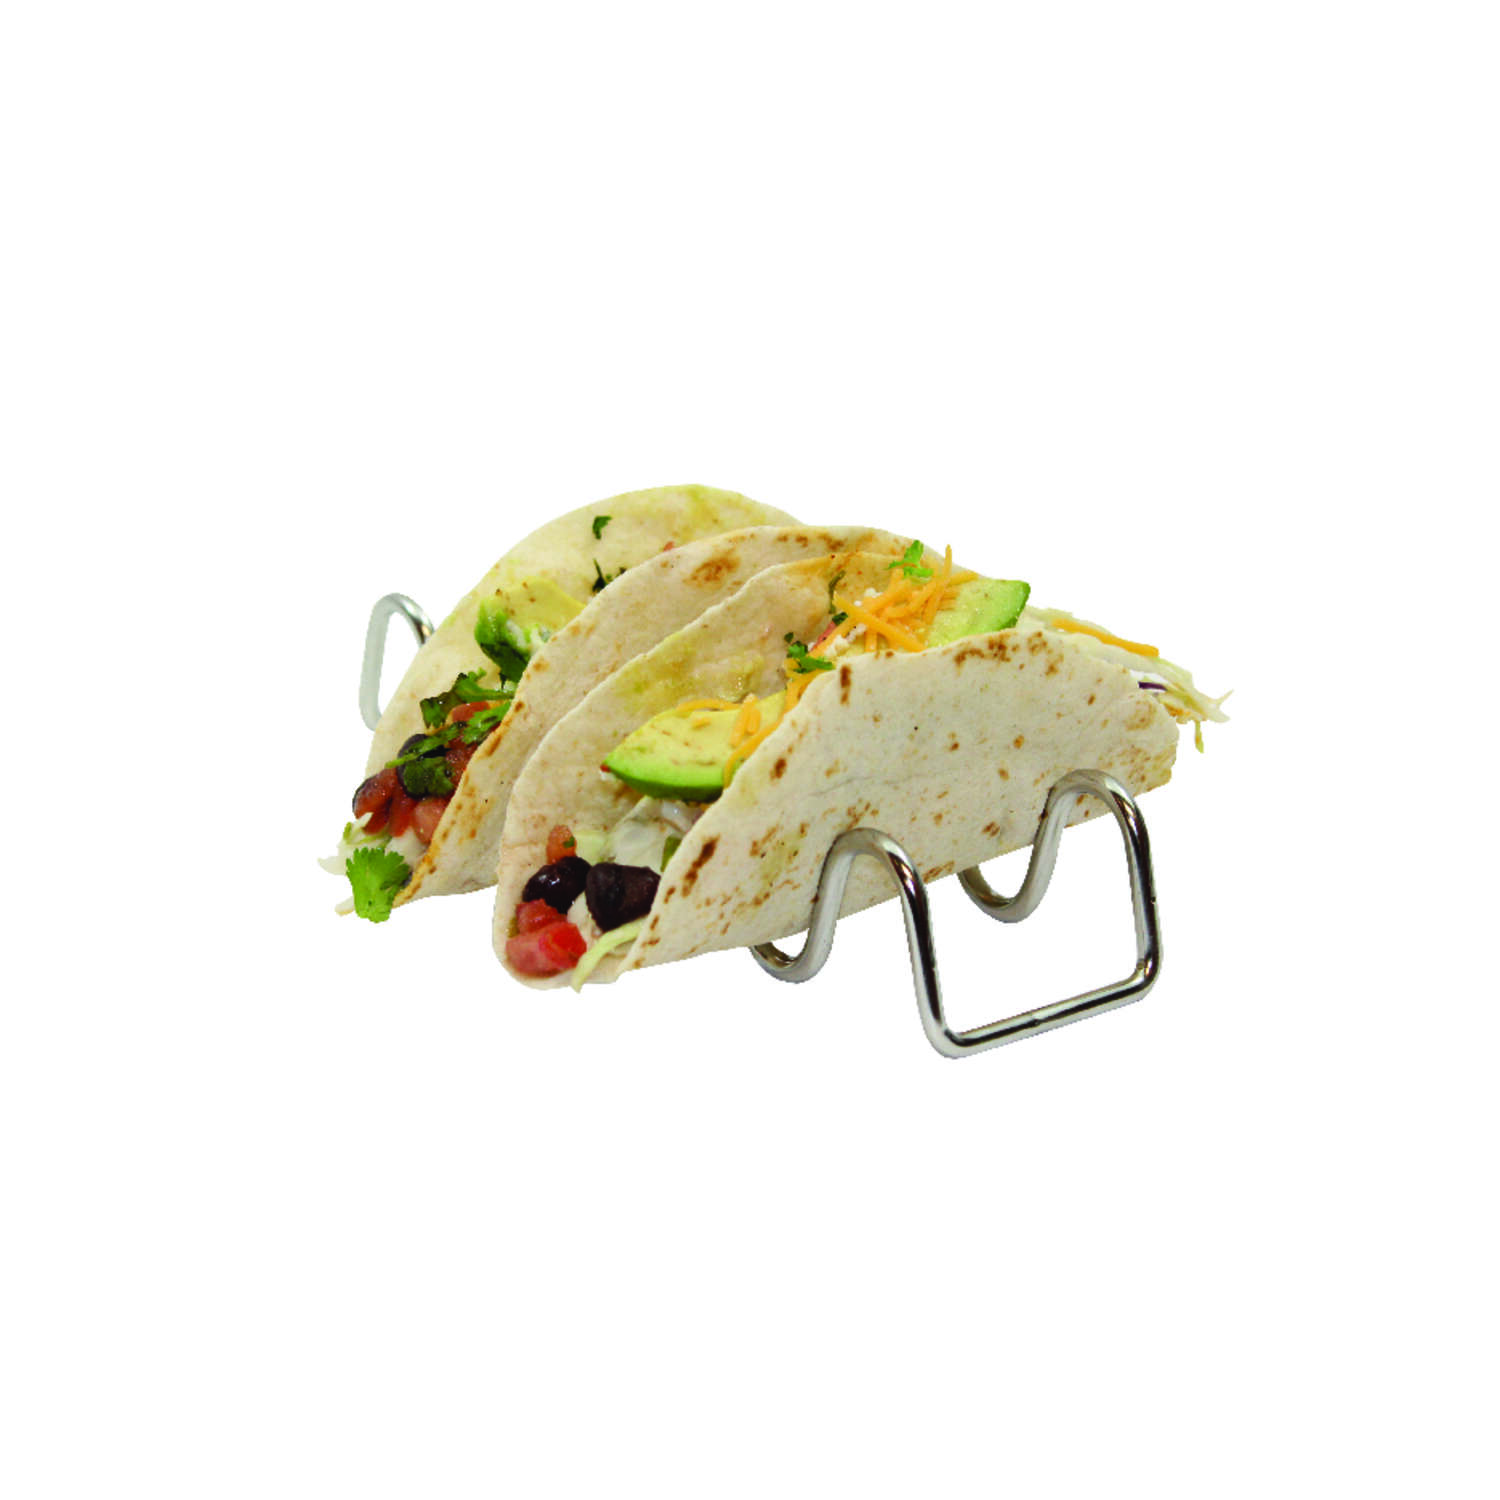 Tablecraft  Taco Taxi  2-1/4 in. W x 7-3/4 in. L Silver  Stainless Steel  Taco Holder